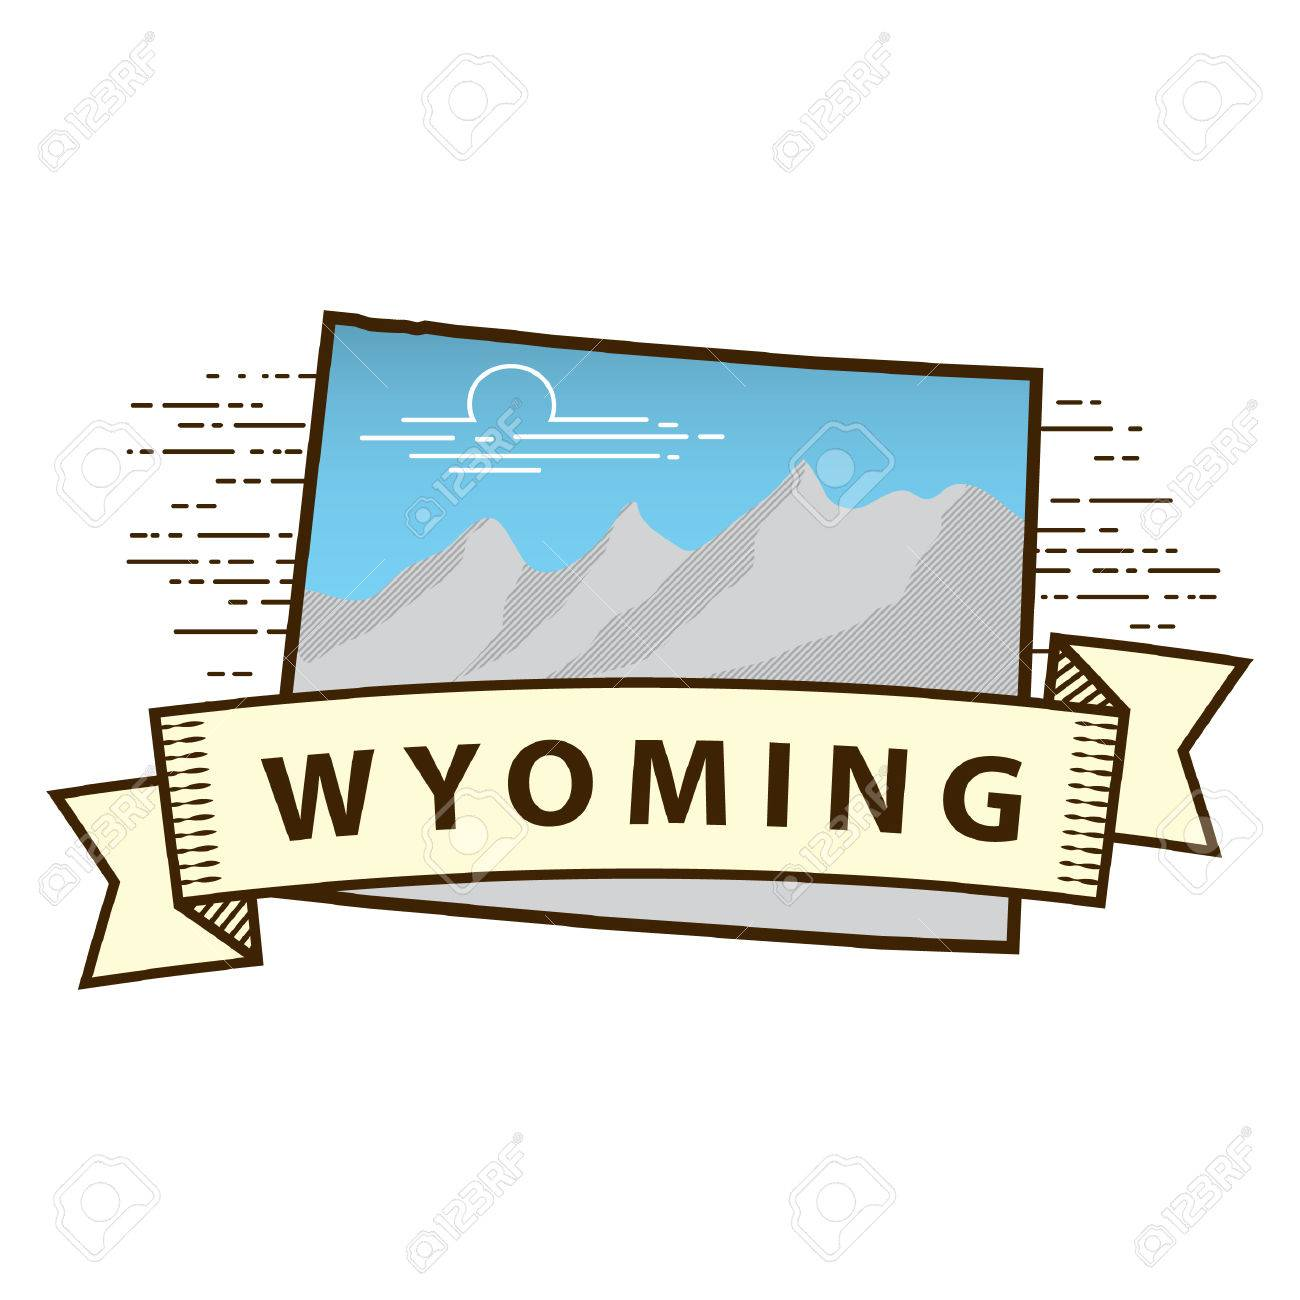 Wyoming State Map Royalty Free Cliparts, Vectors, And Stock ...